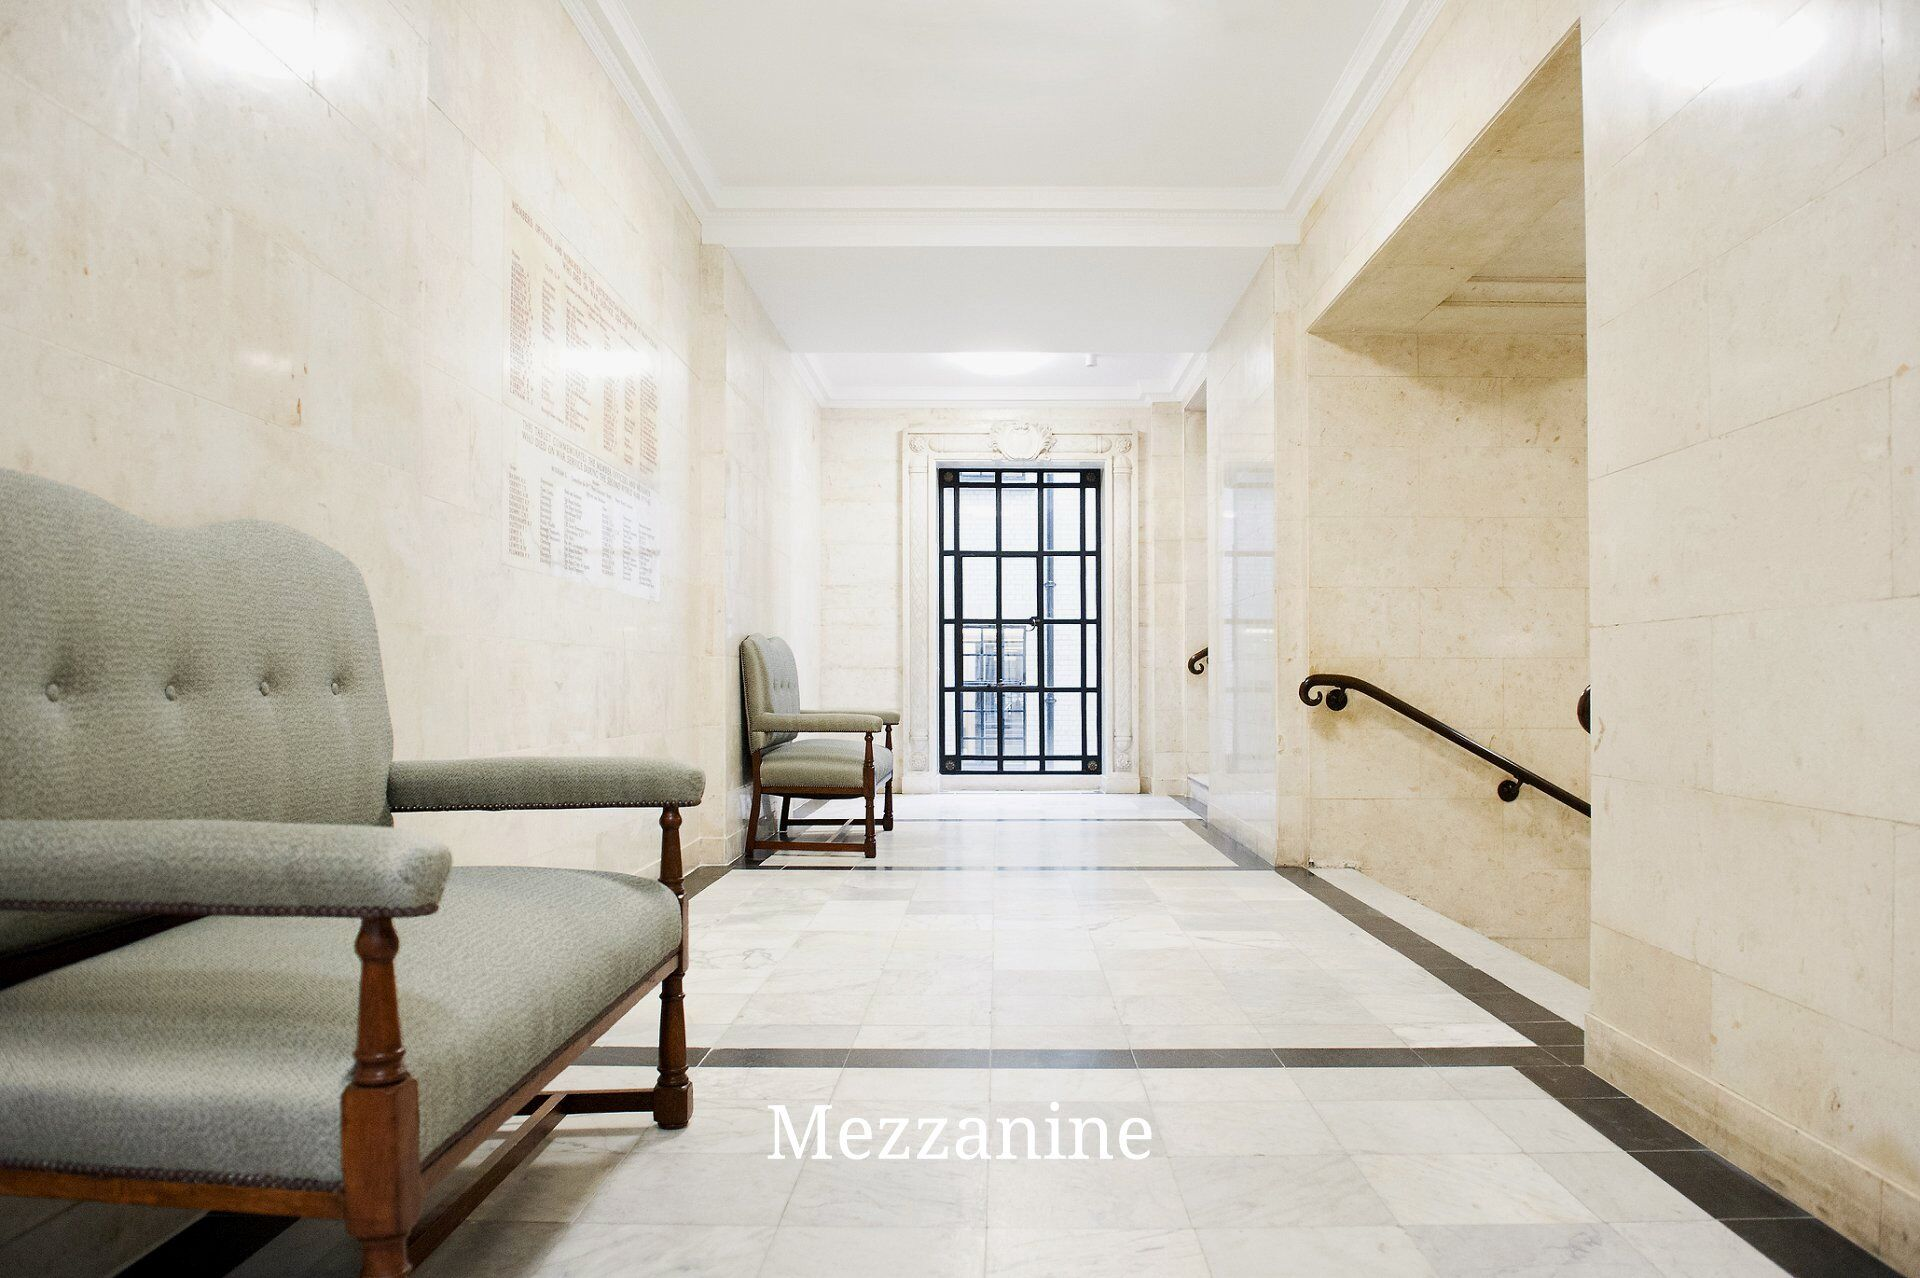 Mezzanine level between the ground and first floor inside Old Marylebone Town Hall